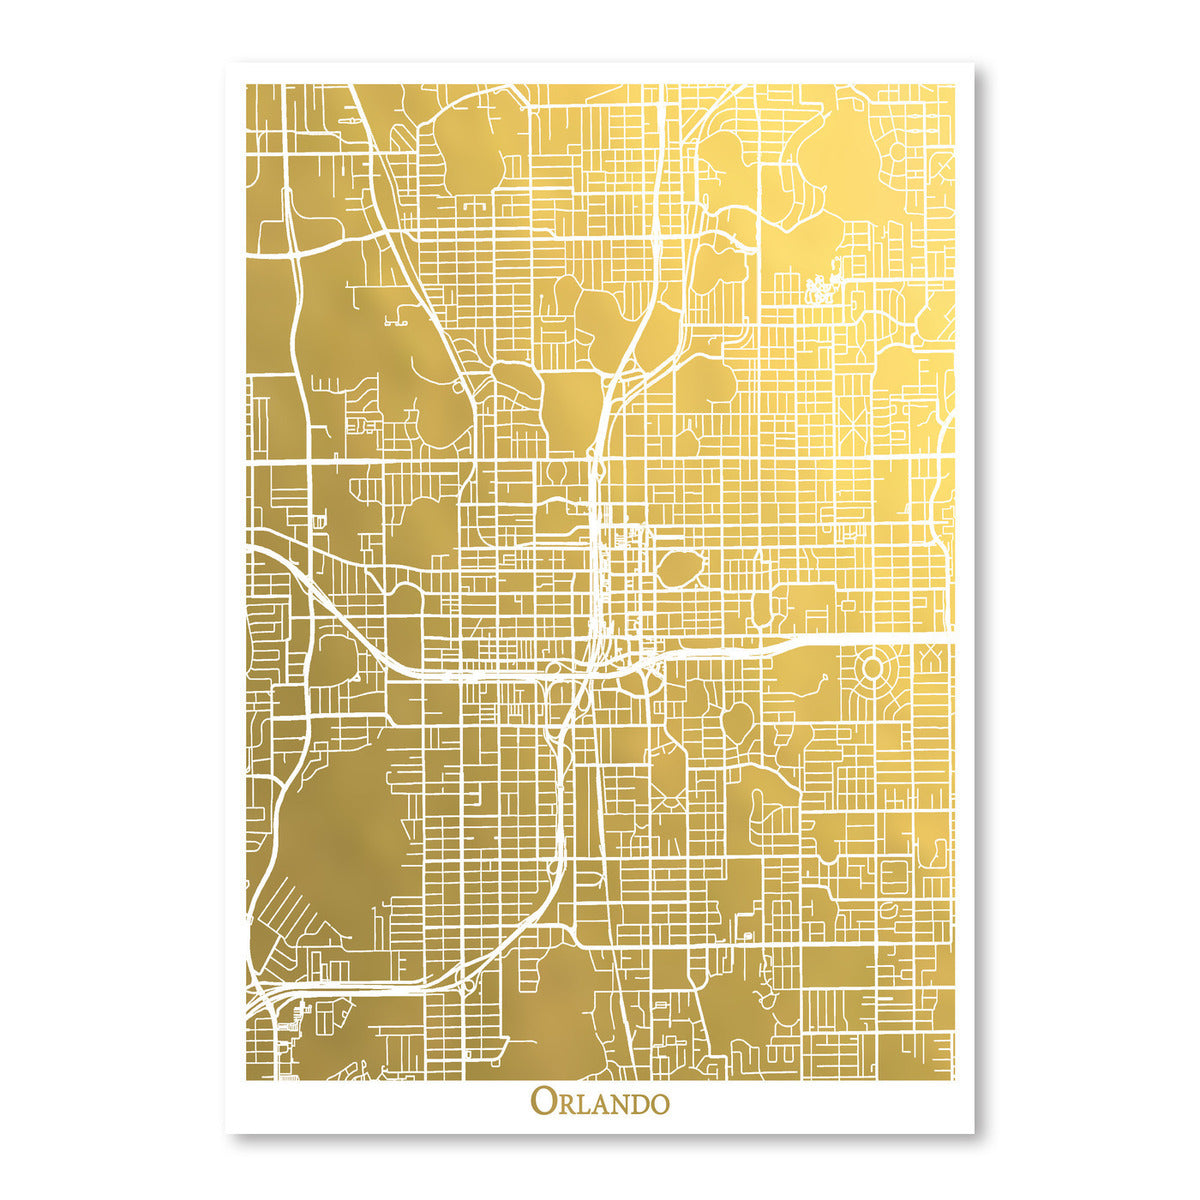 Orlando by The Gold Foil Map Company Art Print - Art Print - Americanflat